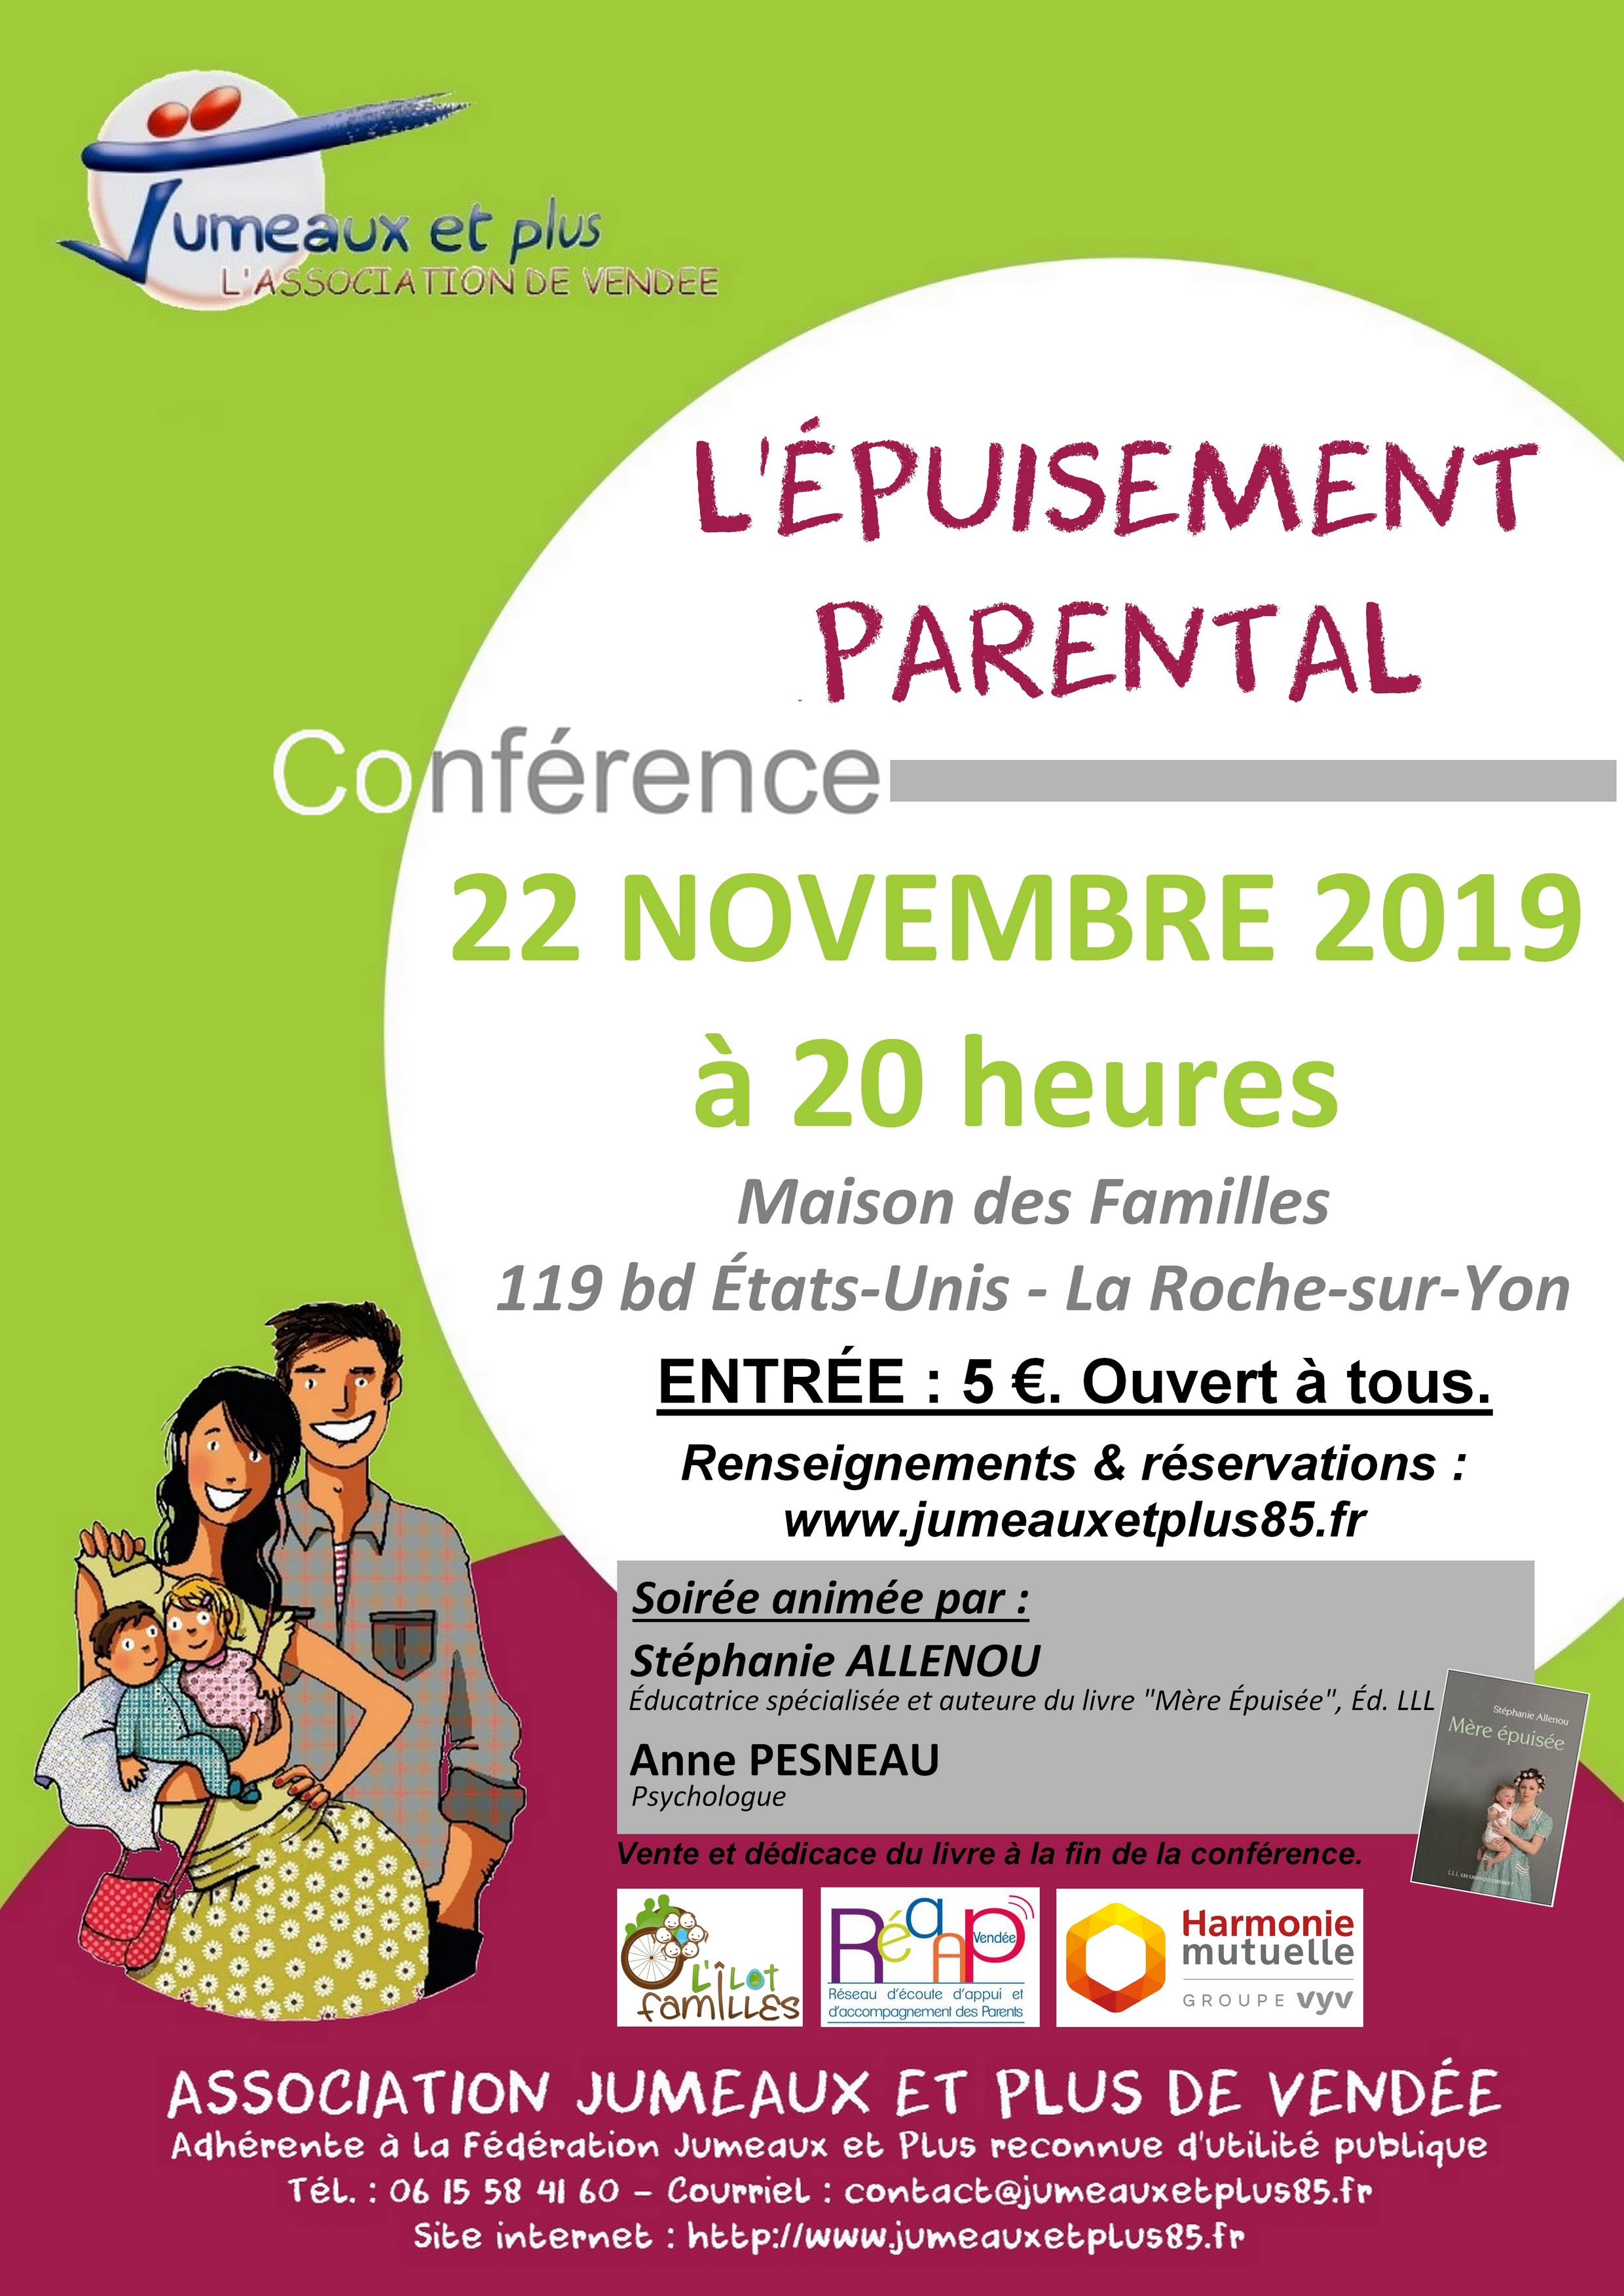 affiche conf epuisement parental 22nov19 V2